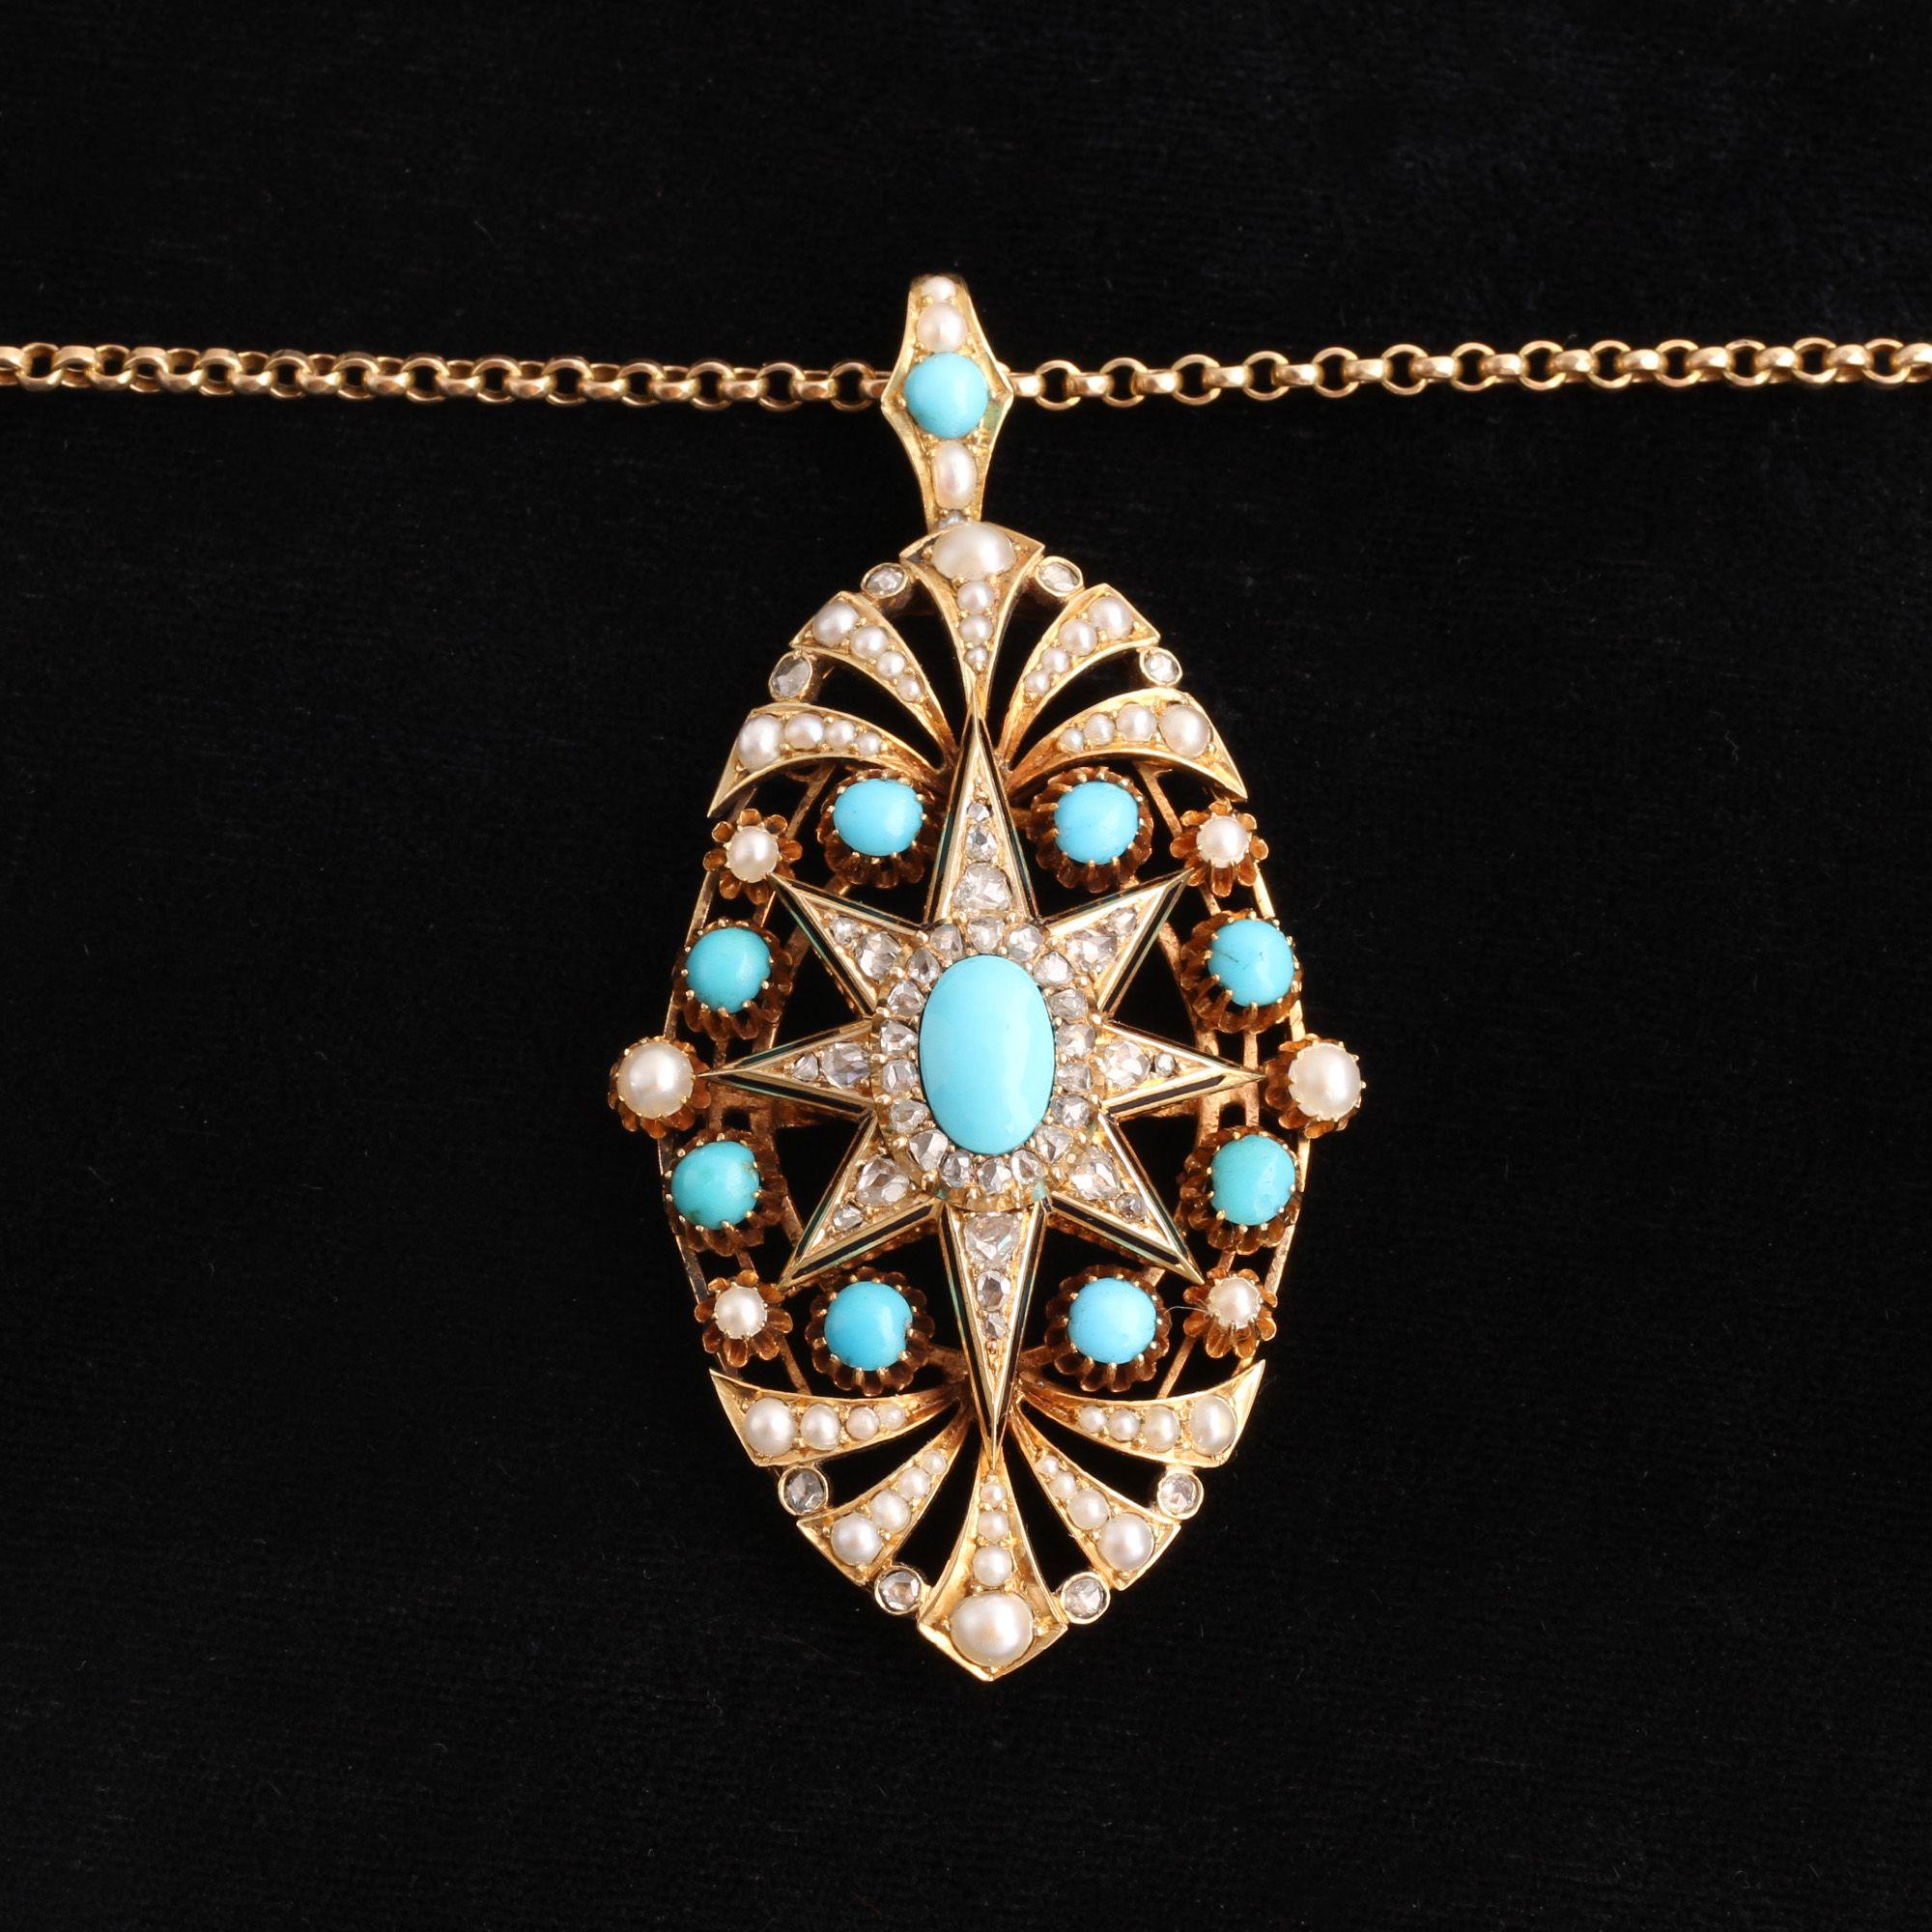 Victorian Enamel, Rose Cut Diamond, Pearl and Persian Turquoise Starburst Pendant